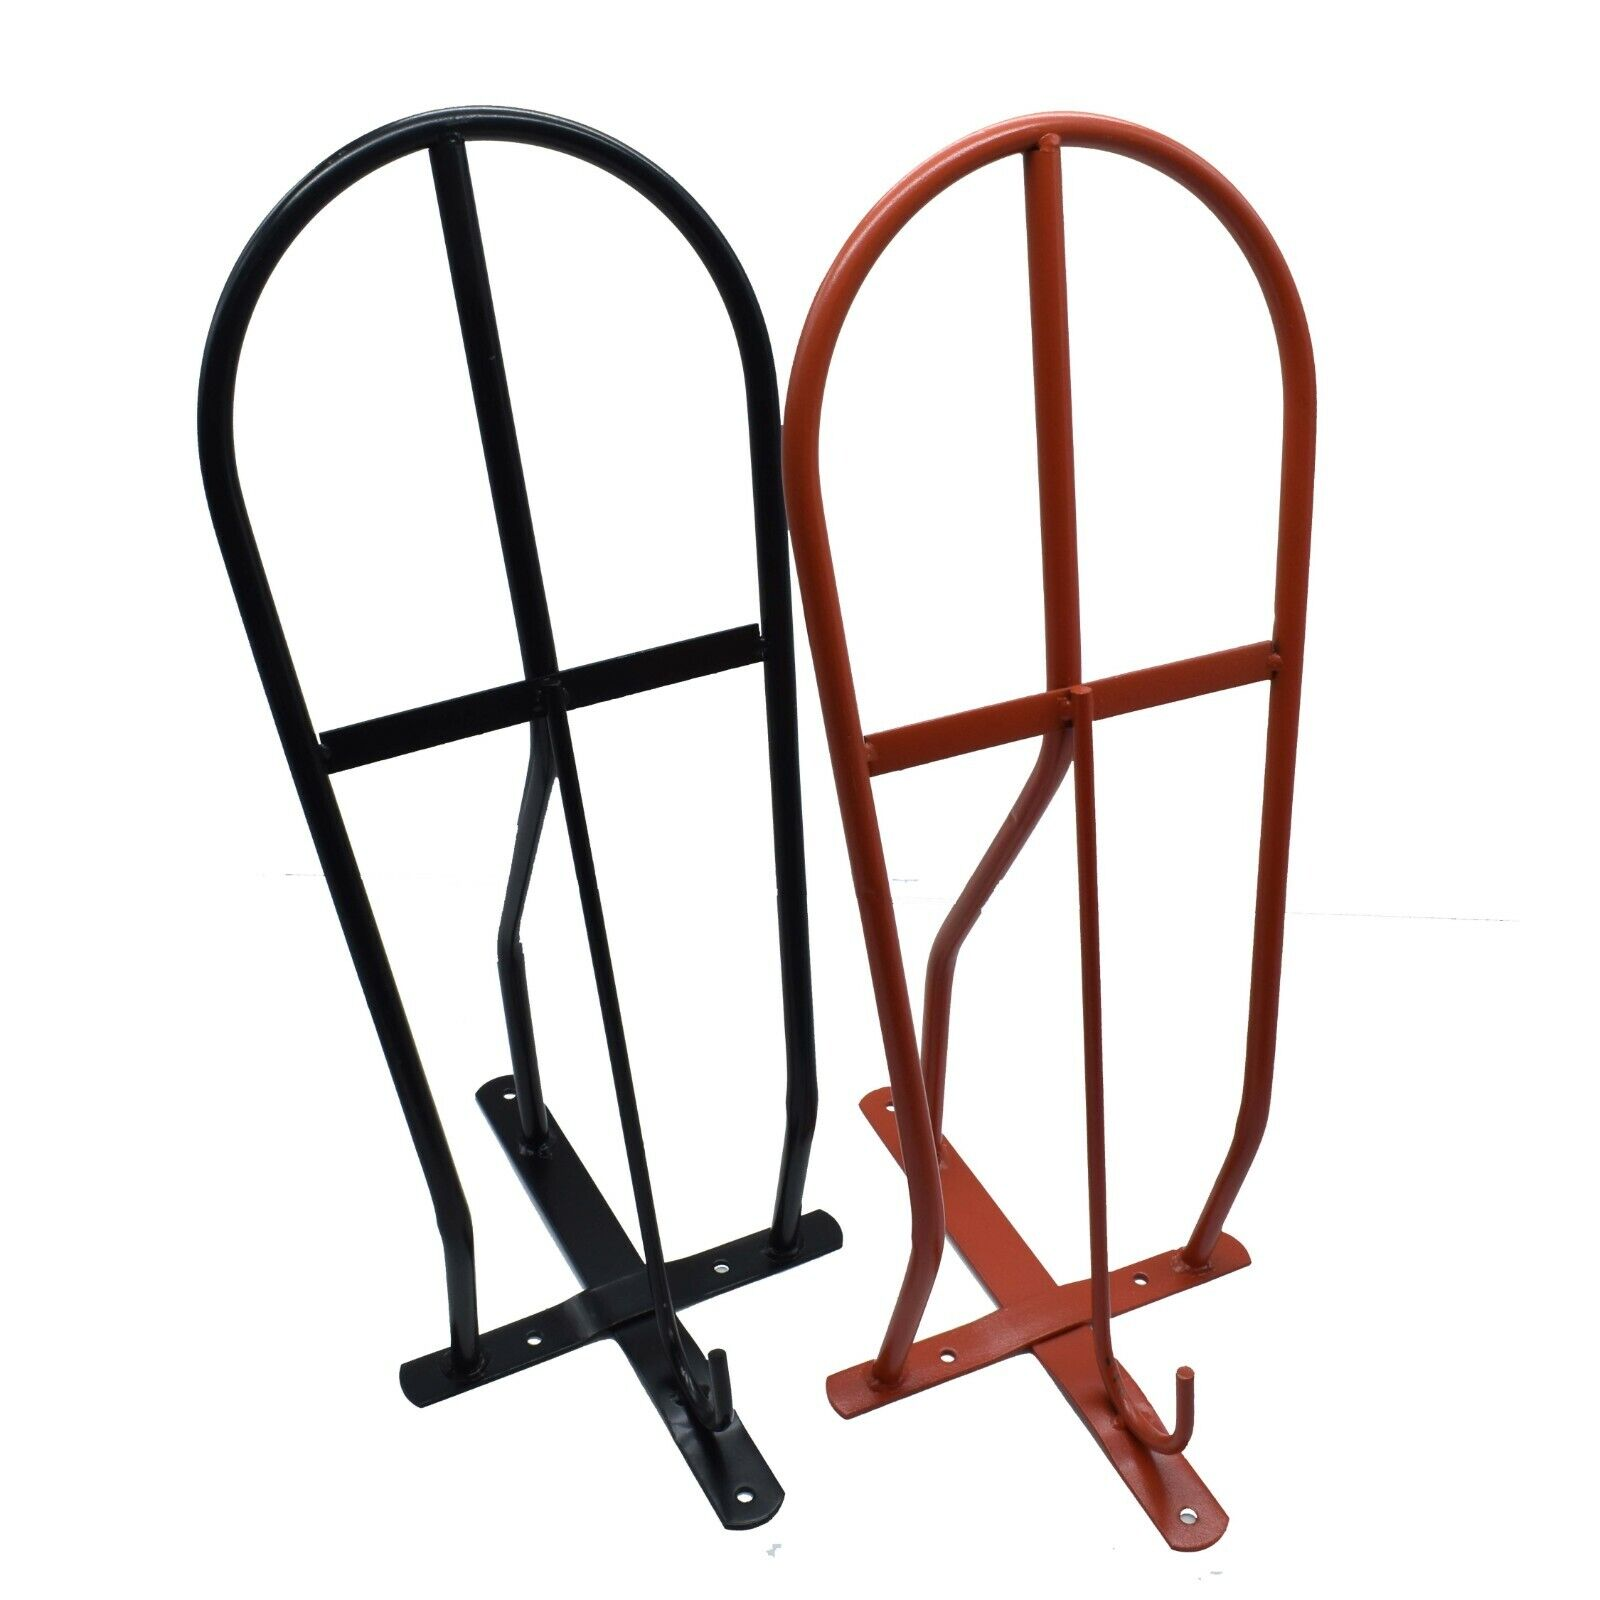 Black Perry Equestrian No.524 Wall Mounted Standard Saddle Rack